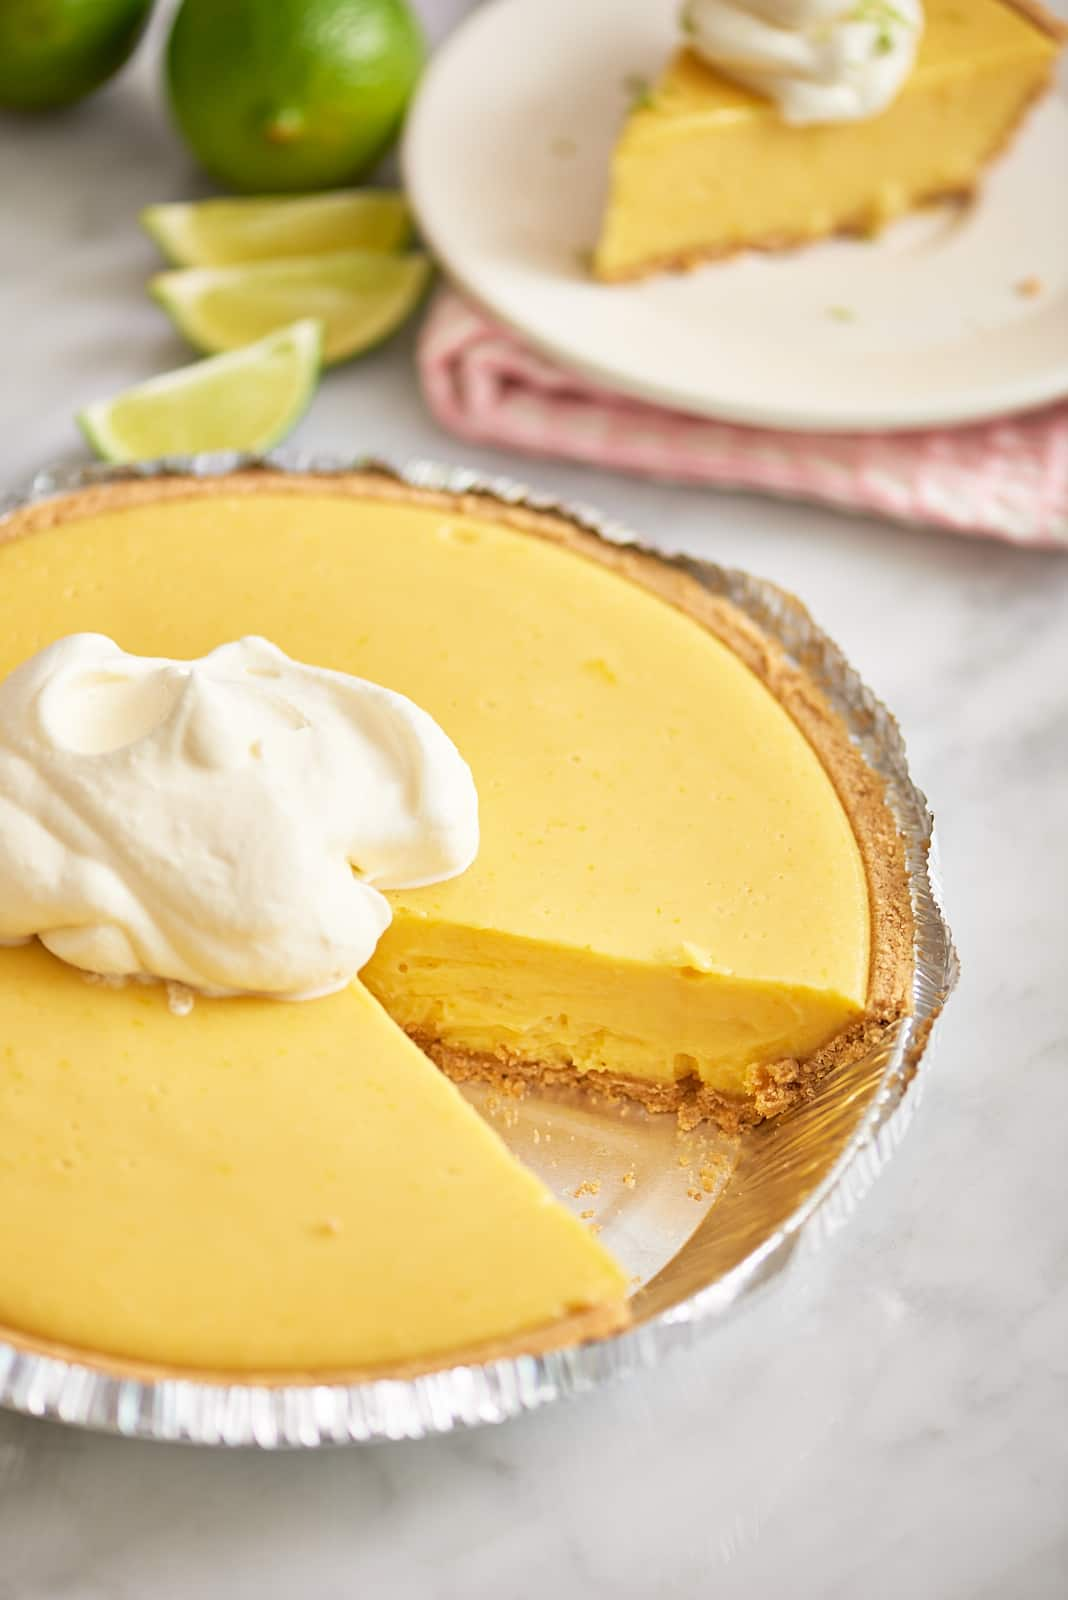 Best Key Lime Pie in FLA - beauty - pie with slice out